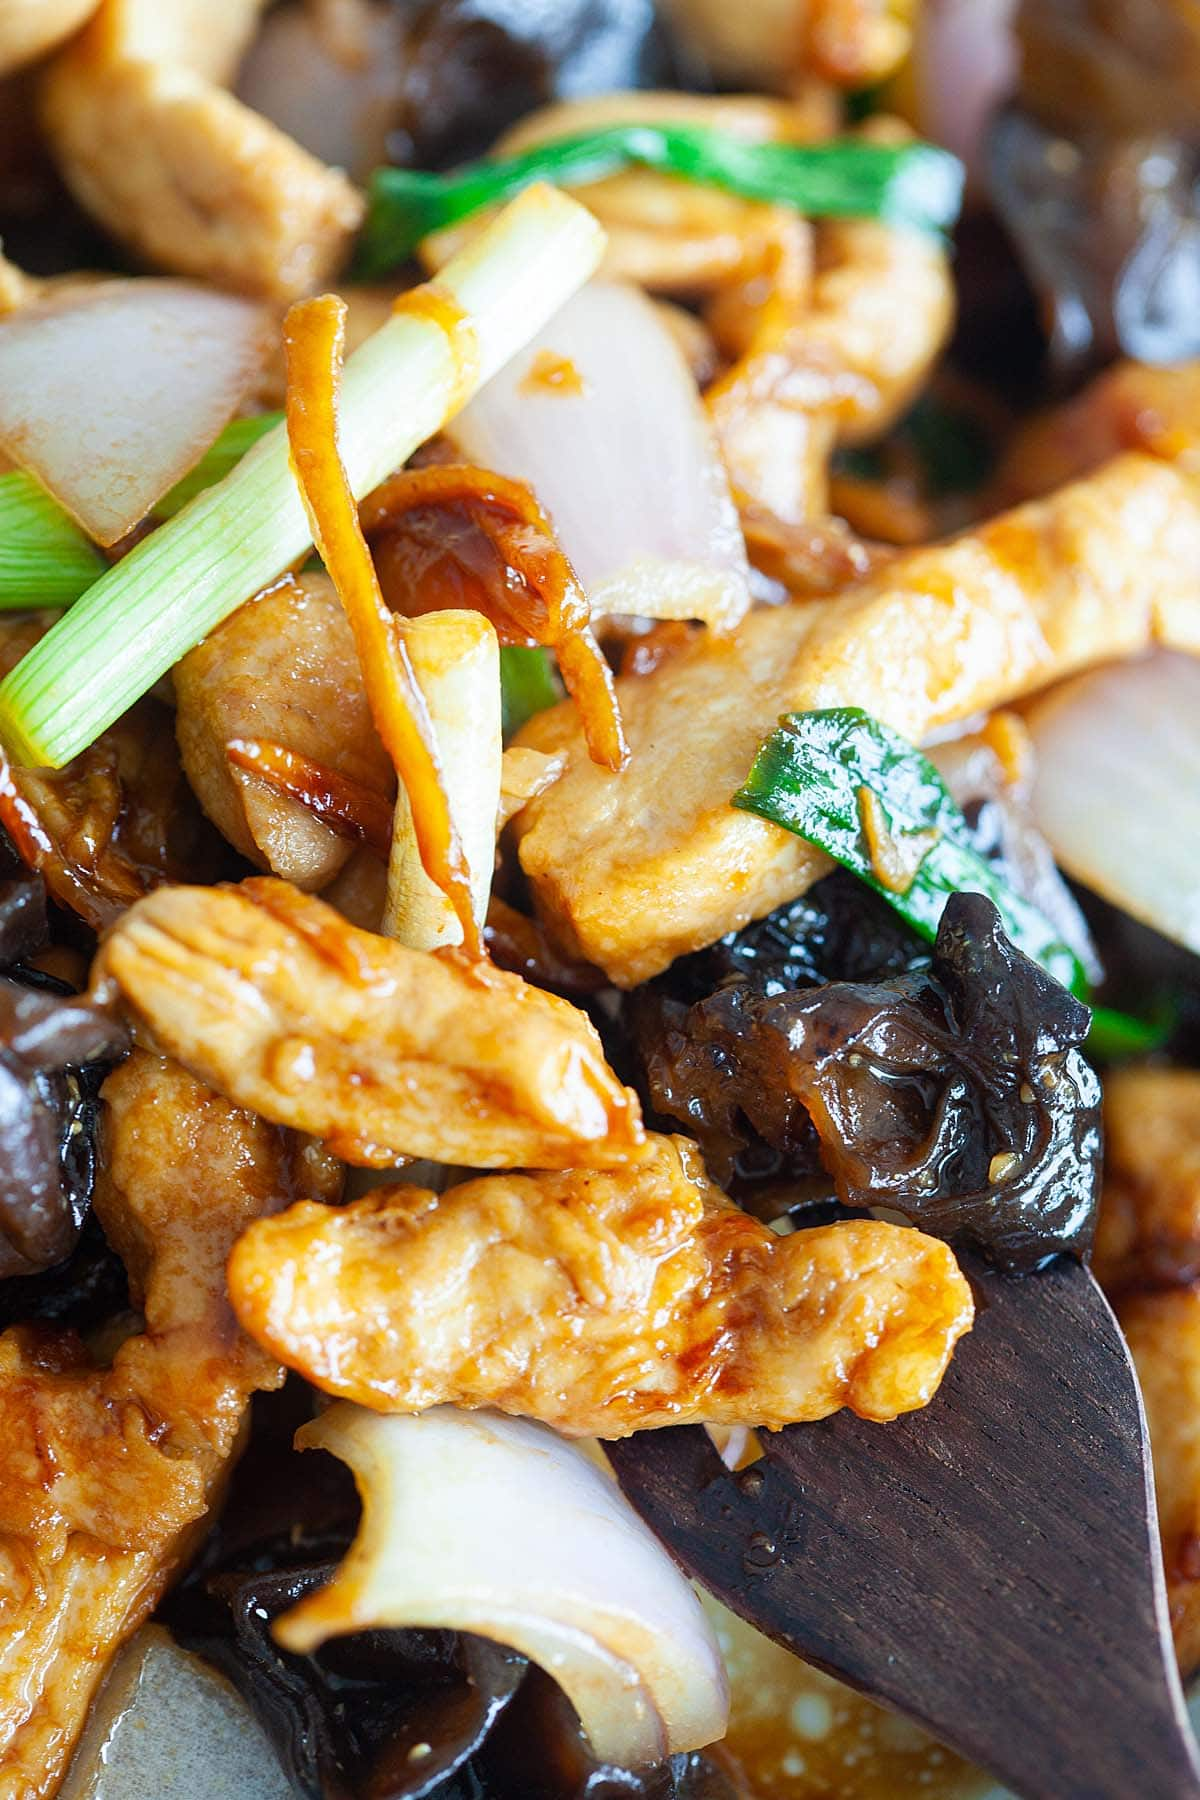 Stir fry chicken with black fungus and ginger, ready to serve.